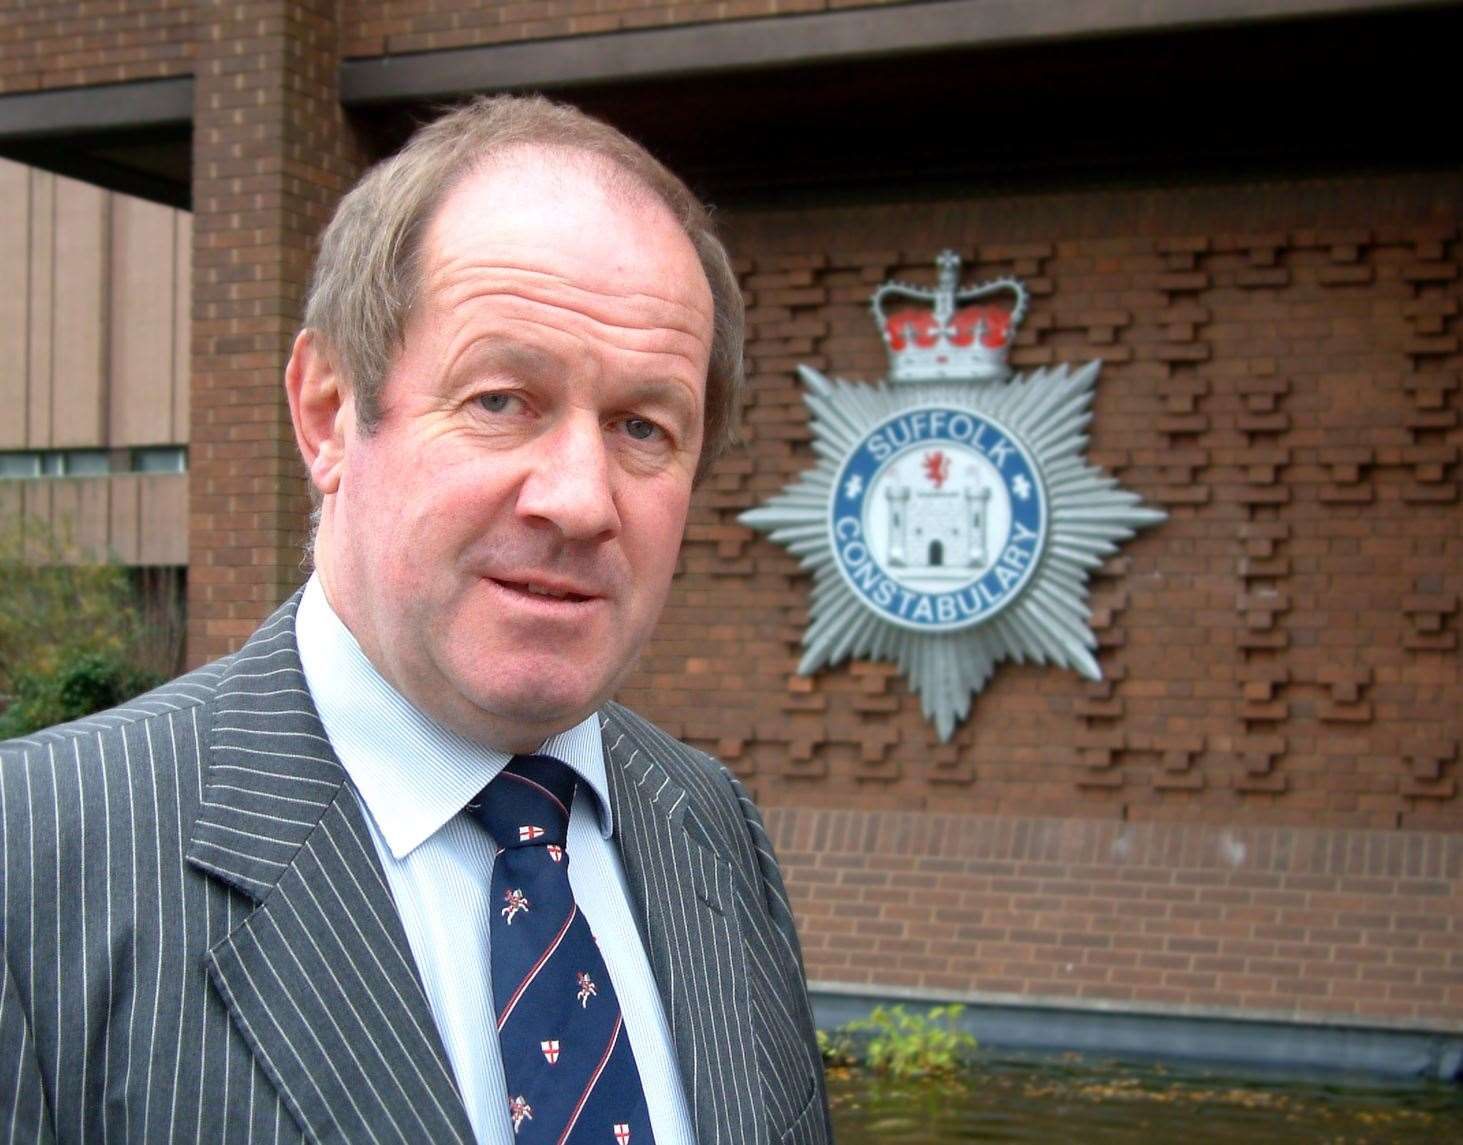 Tim Passmore, Suffolk's police and crime commissioner, is up for re-election this year.